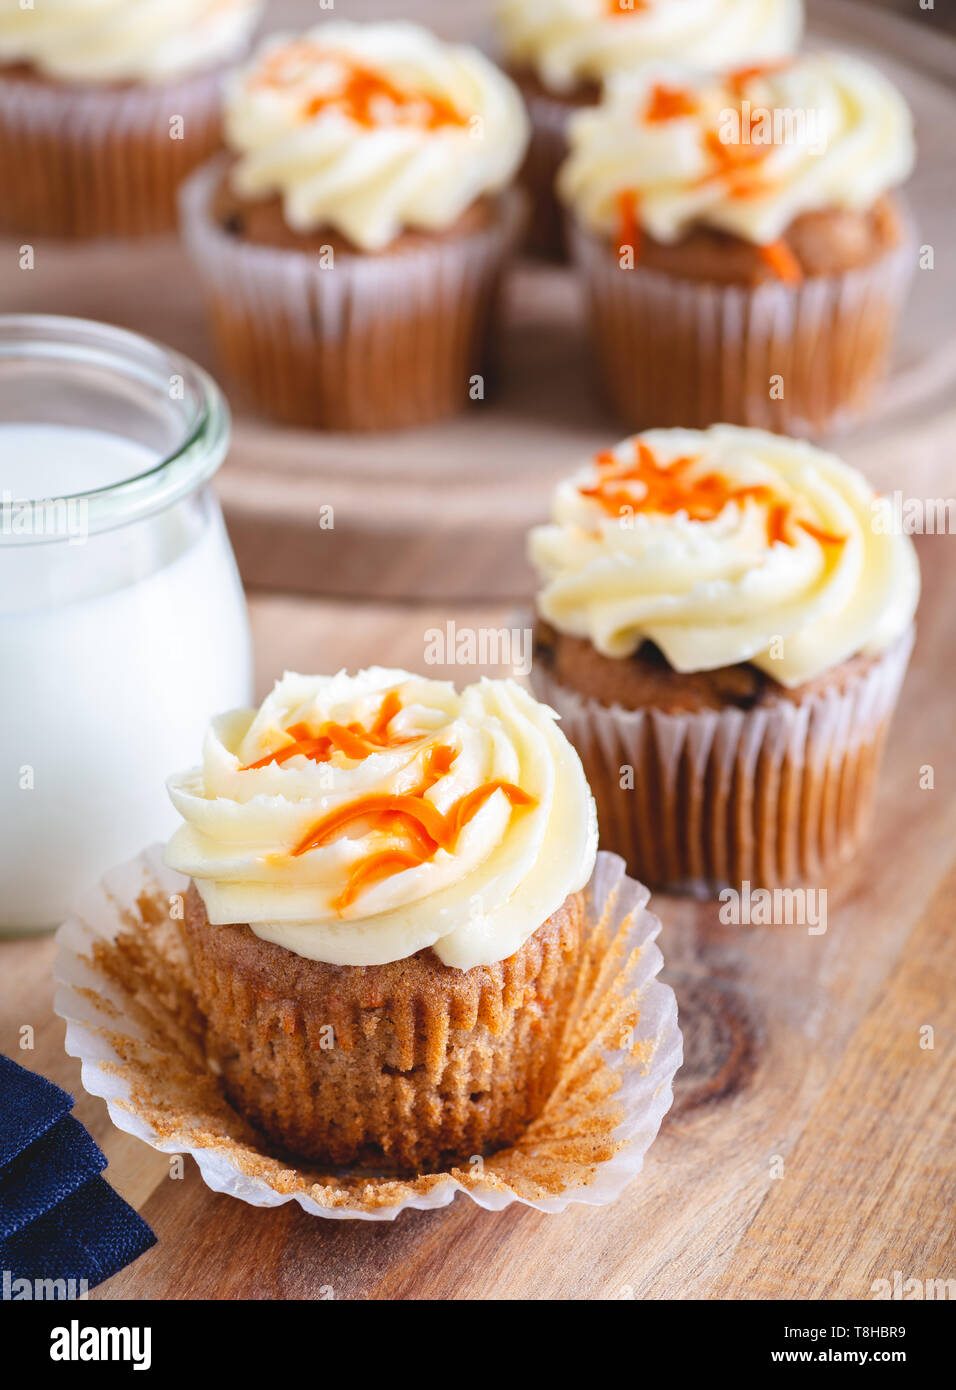 Carrot cupcake with cream cheese icing and glass of milk and cupcakes in background - Stock Image